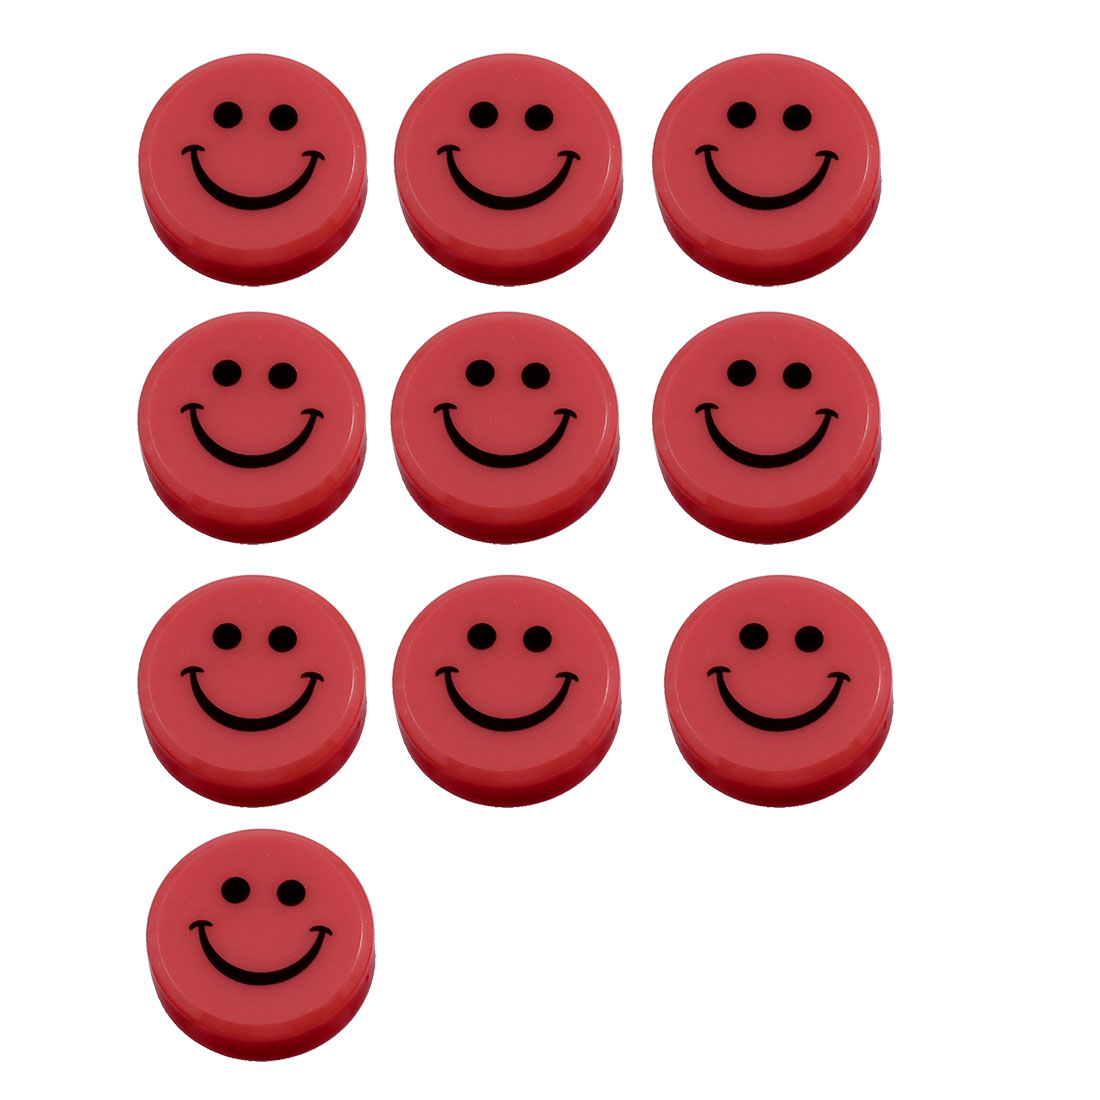 10 Pcs 30mm Dia Round Plastic Smiling Face Refrigerator Magnets Red